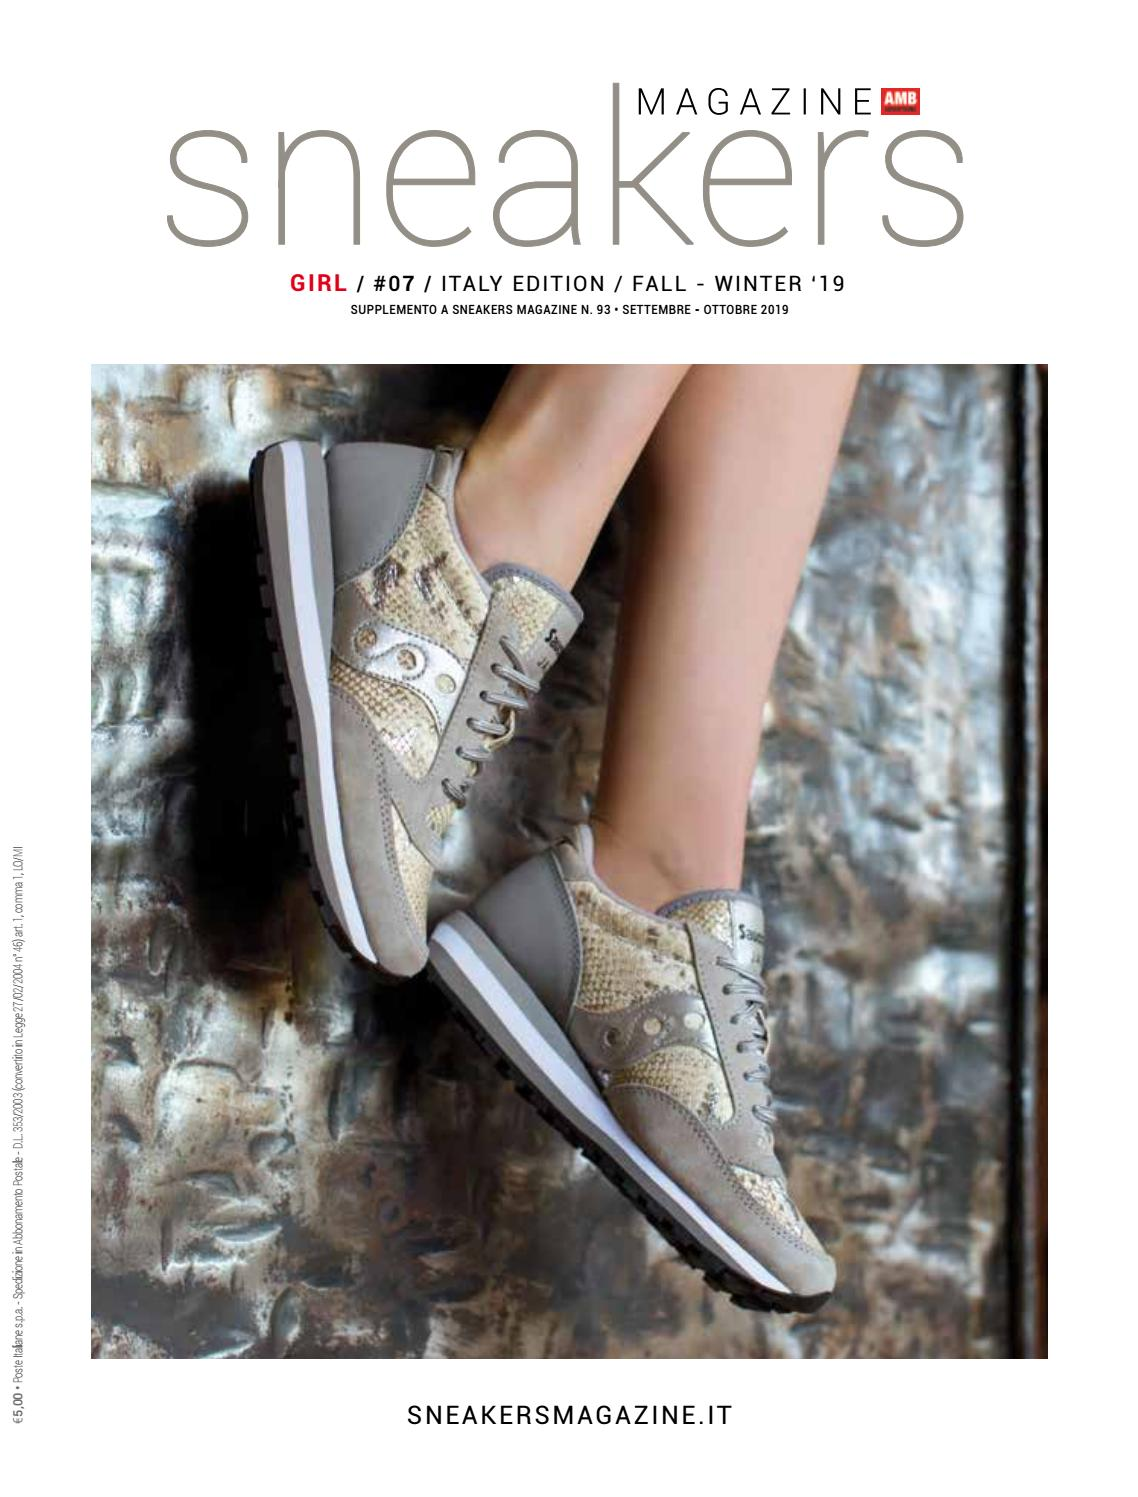 Sneakers Magazine Girl #07 Italian Edition by Snow Planet